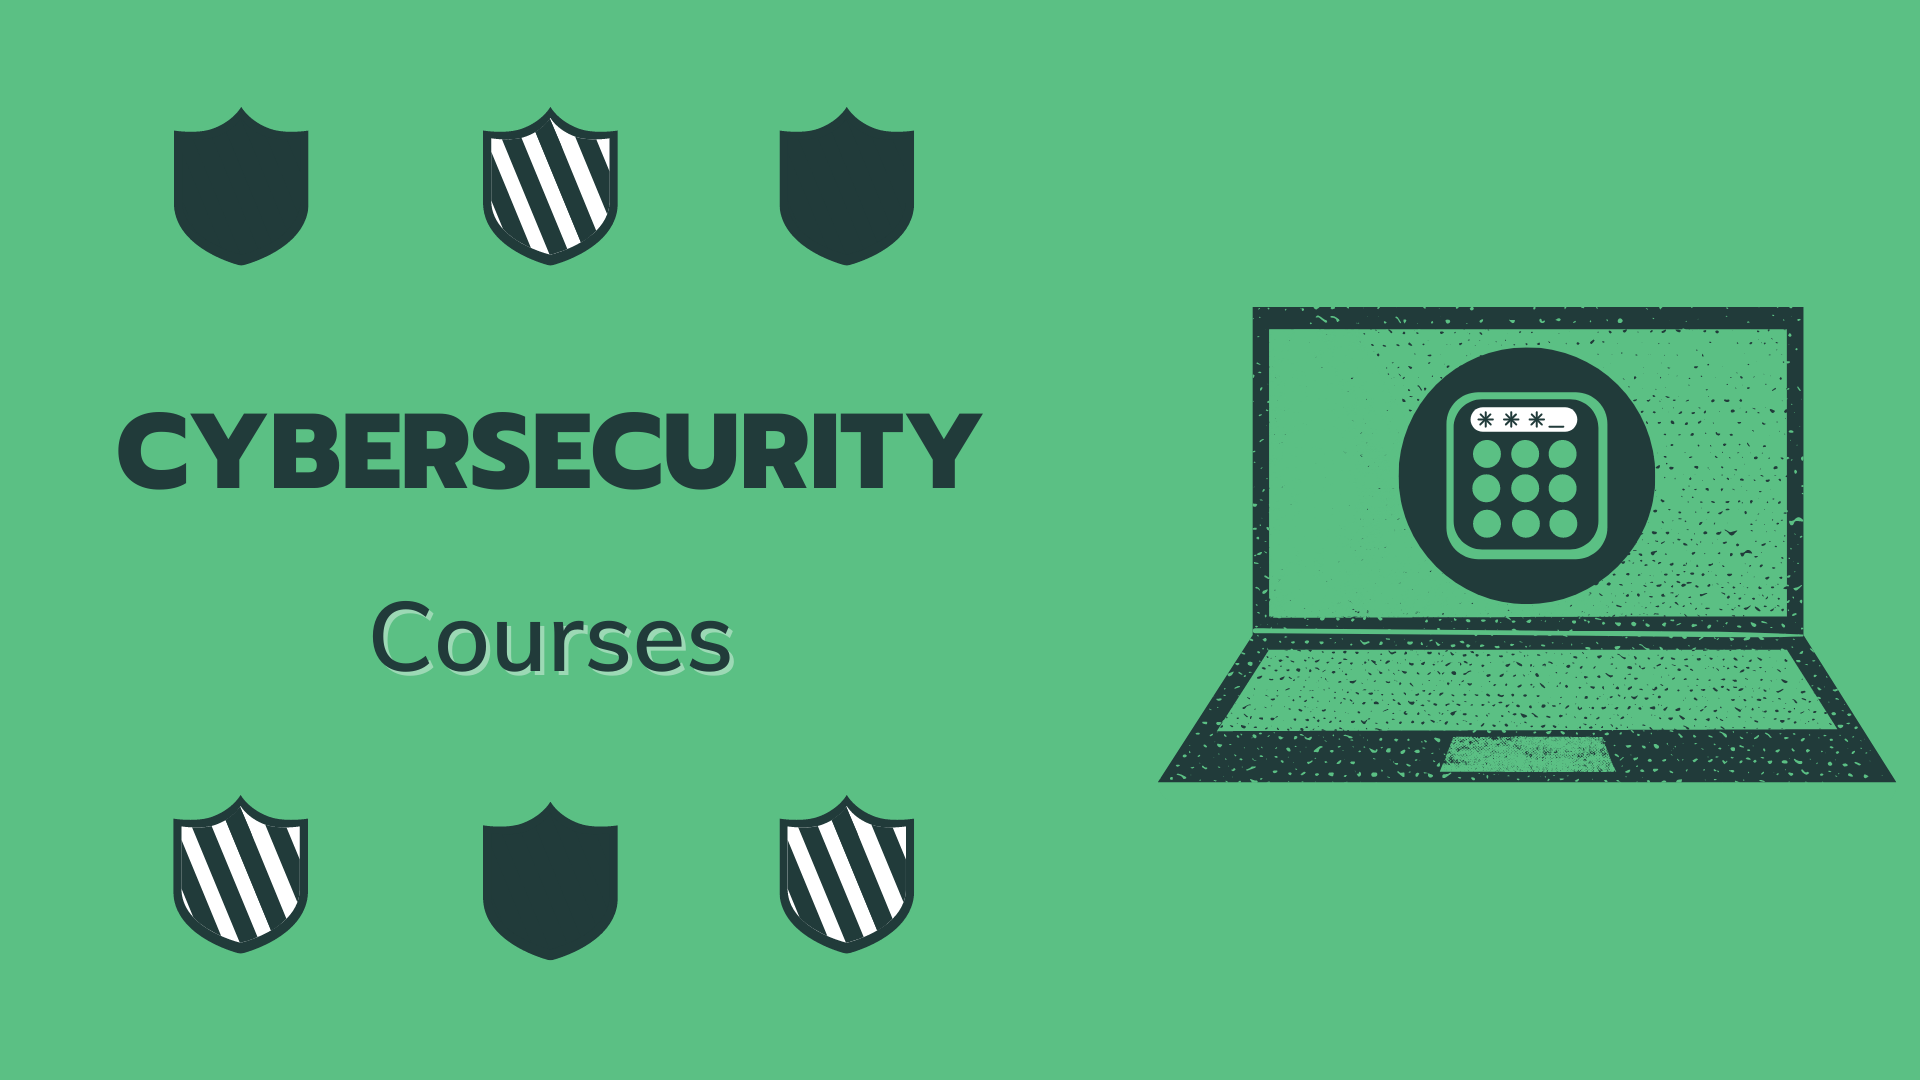 15 Best Cybersecurity Courses - Learn Cybersecurity Online